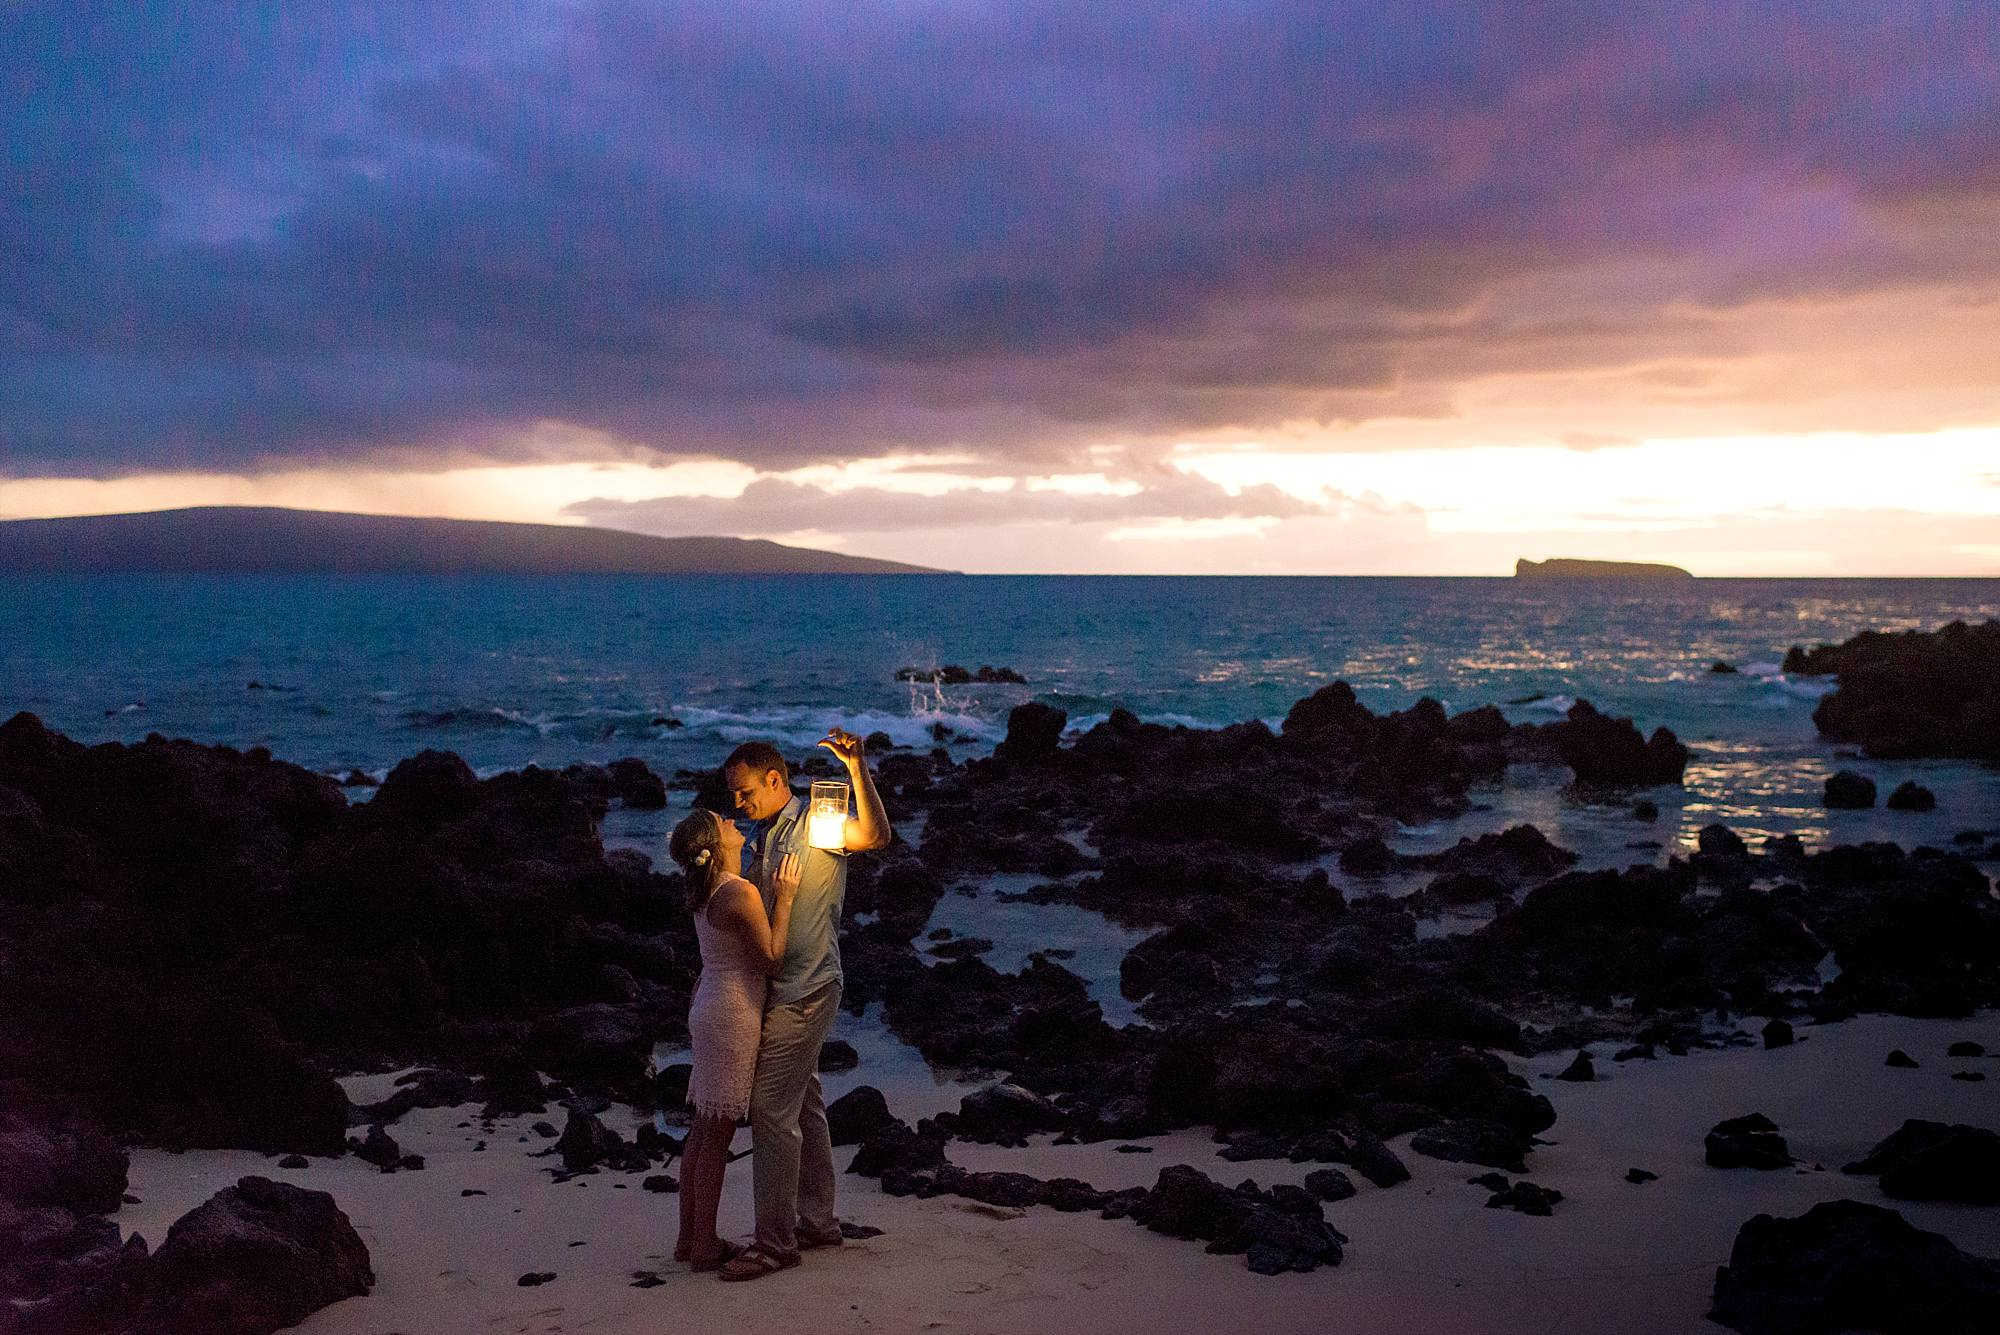 afterdark shot with couples on the beach with a lantern